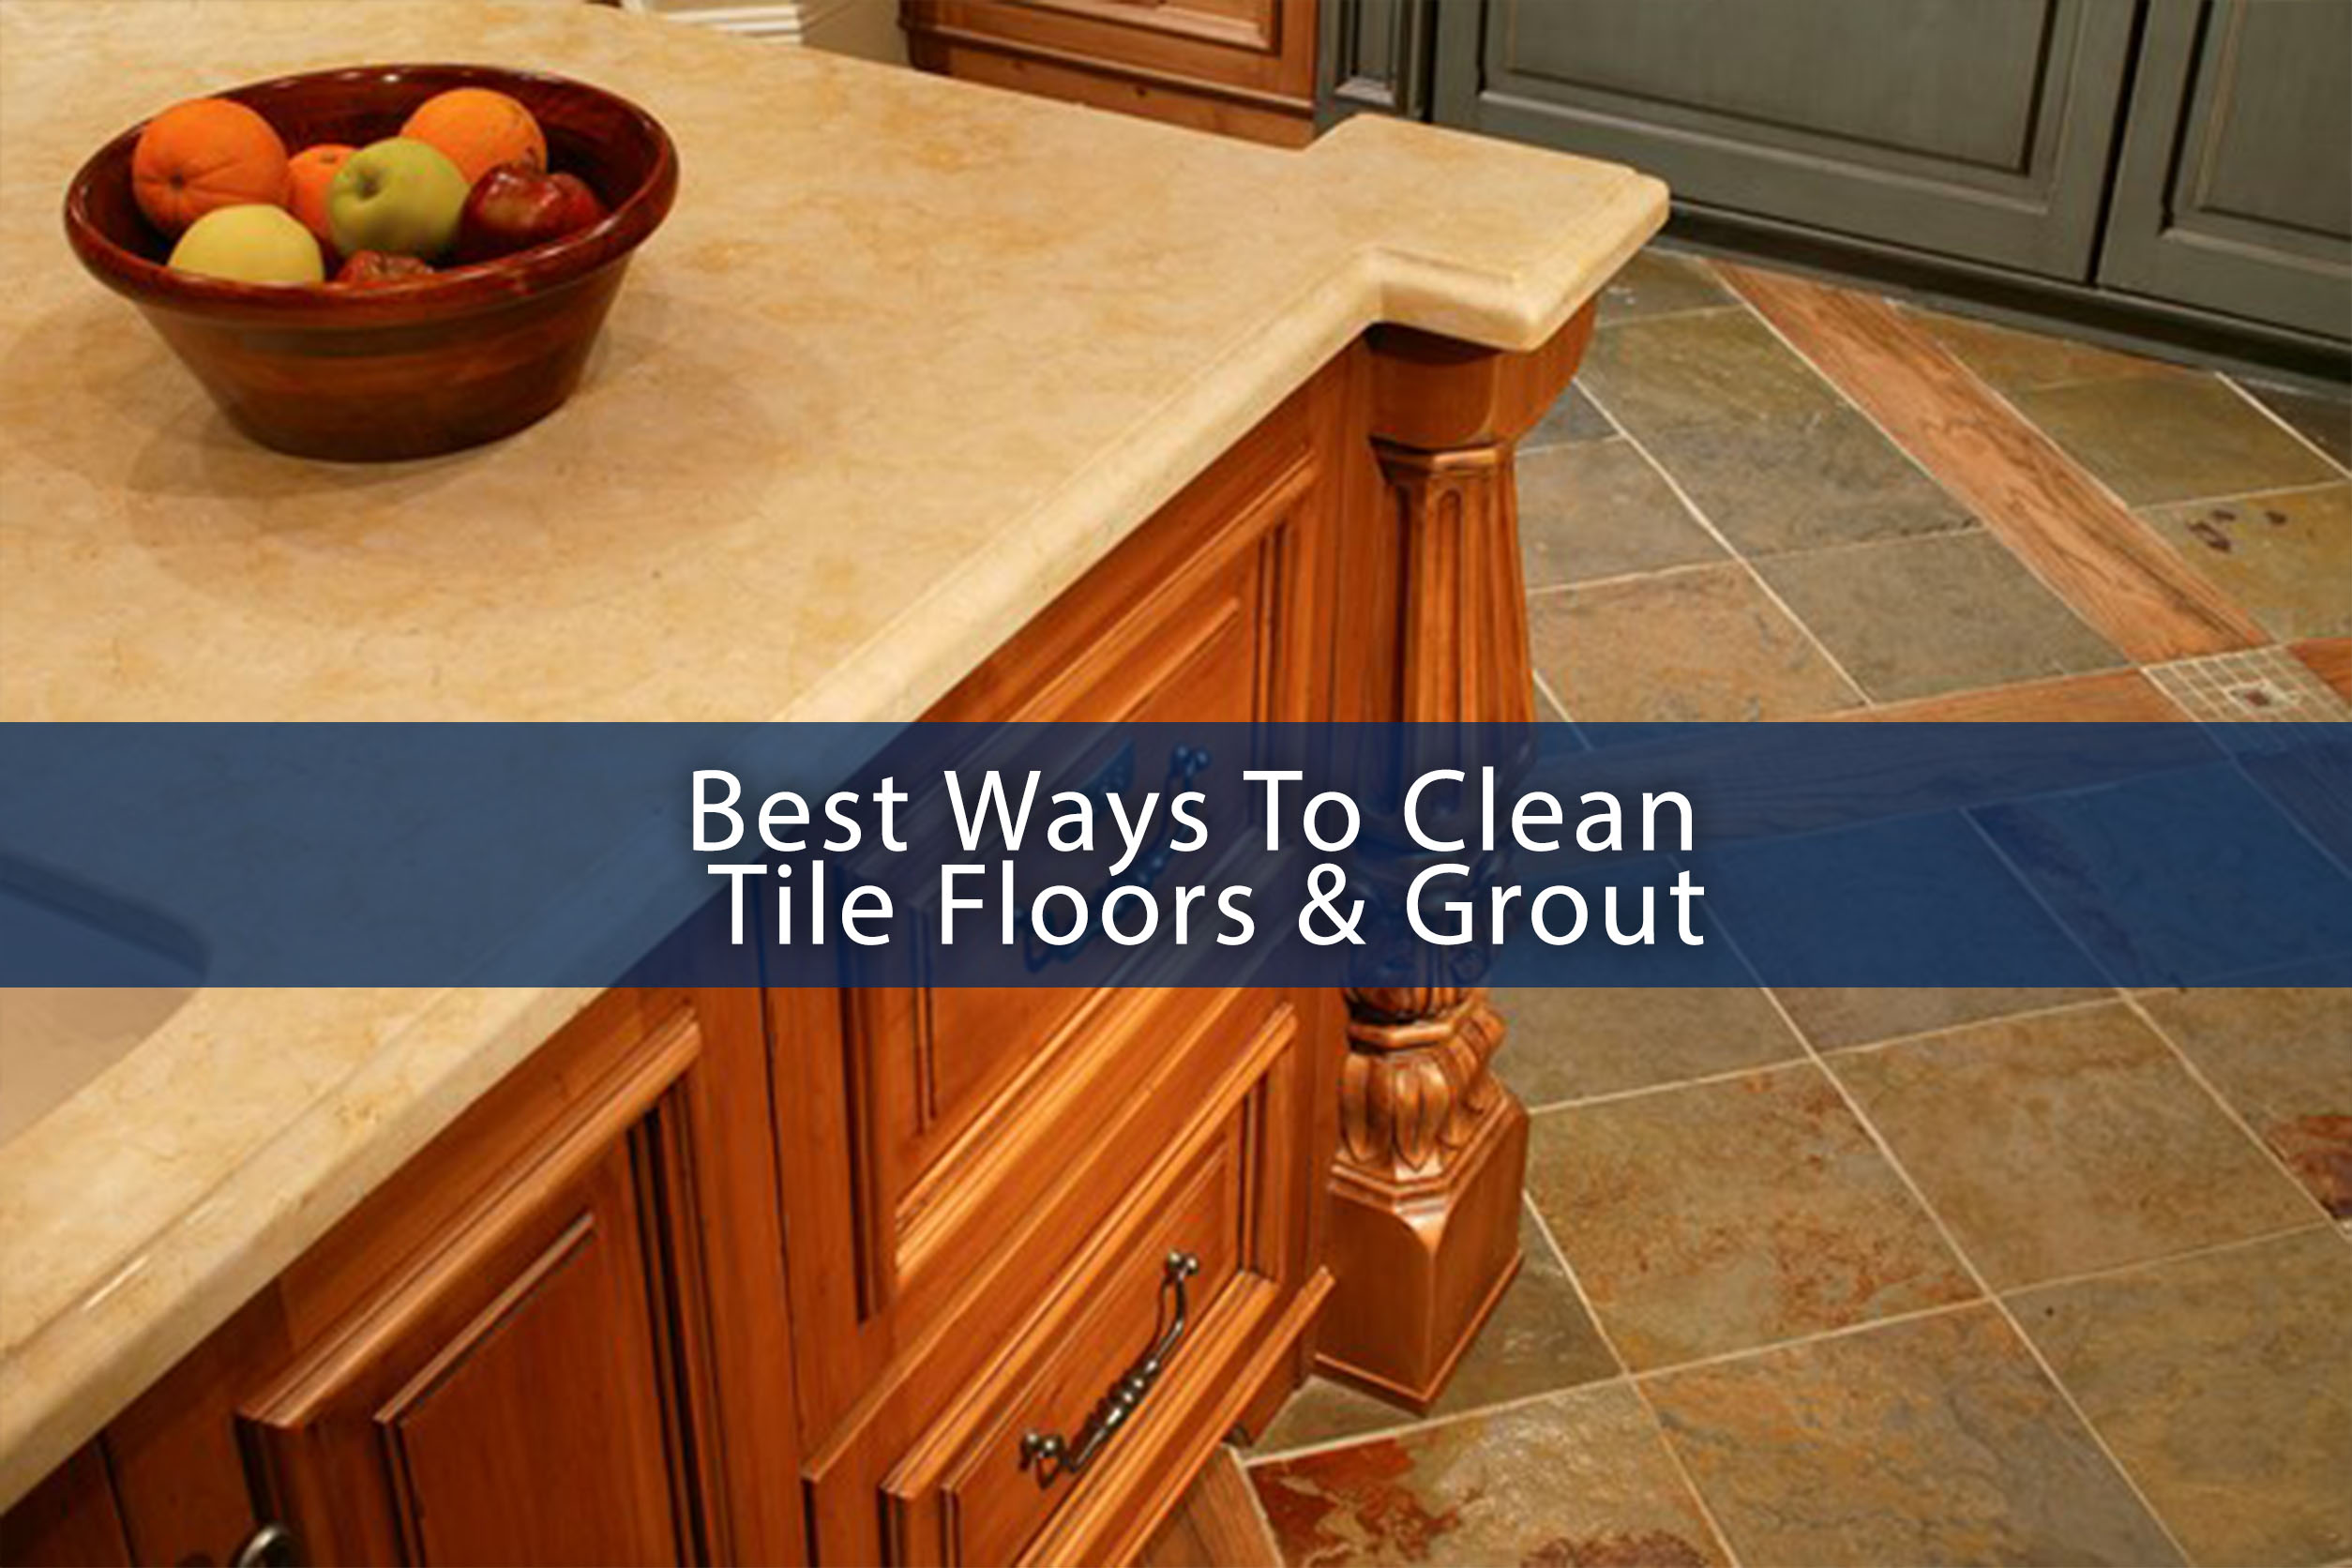 How to clean floor tile grout the easy way